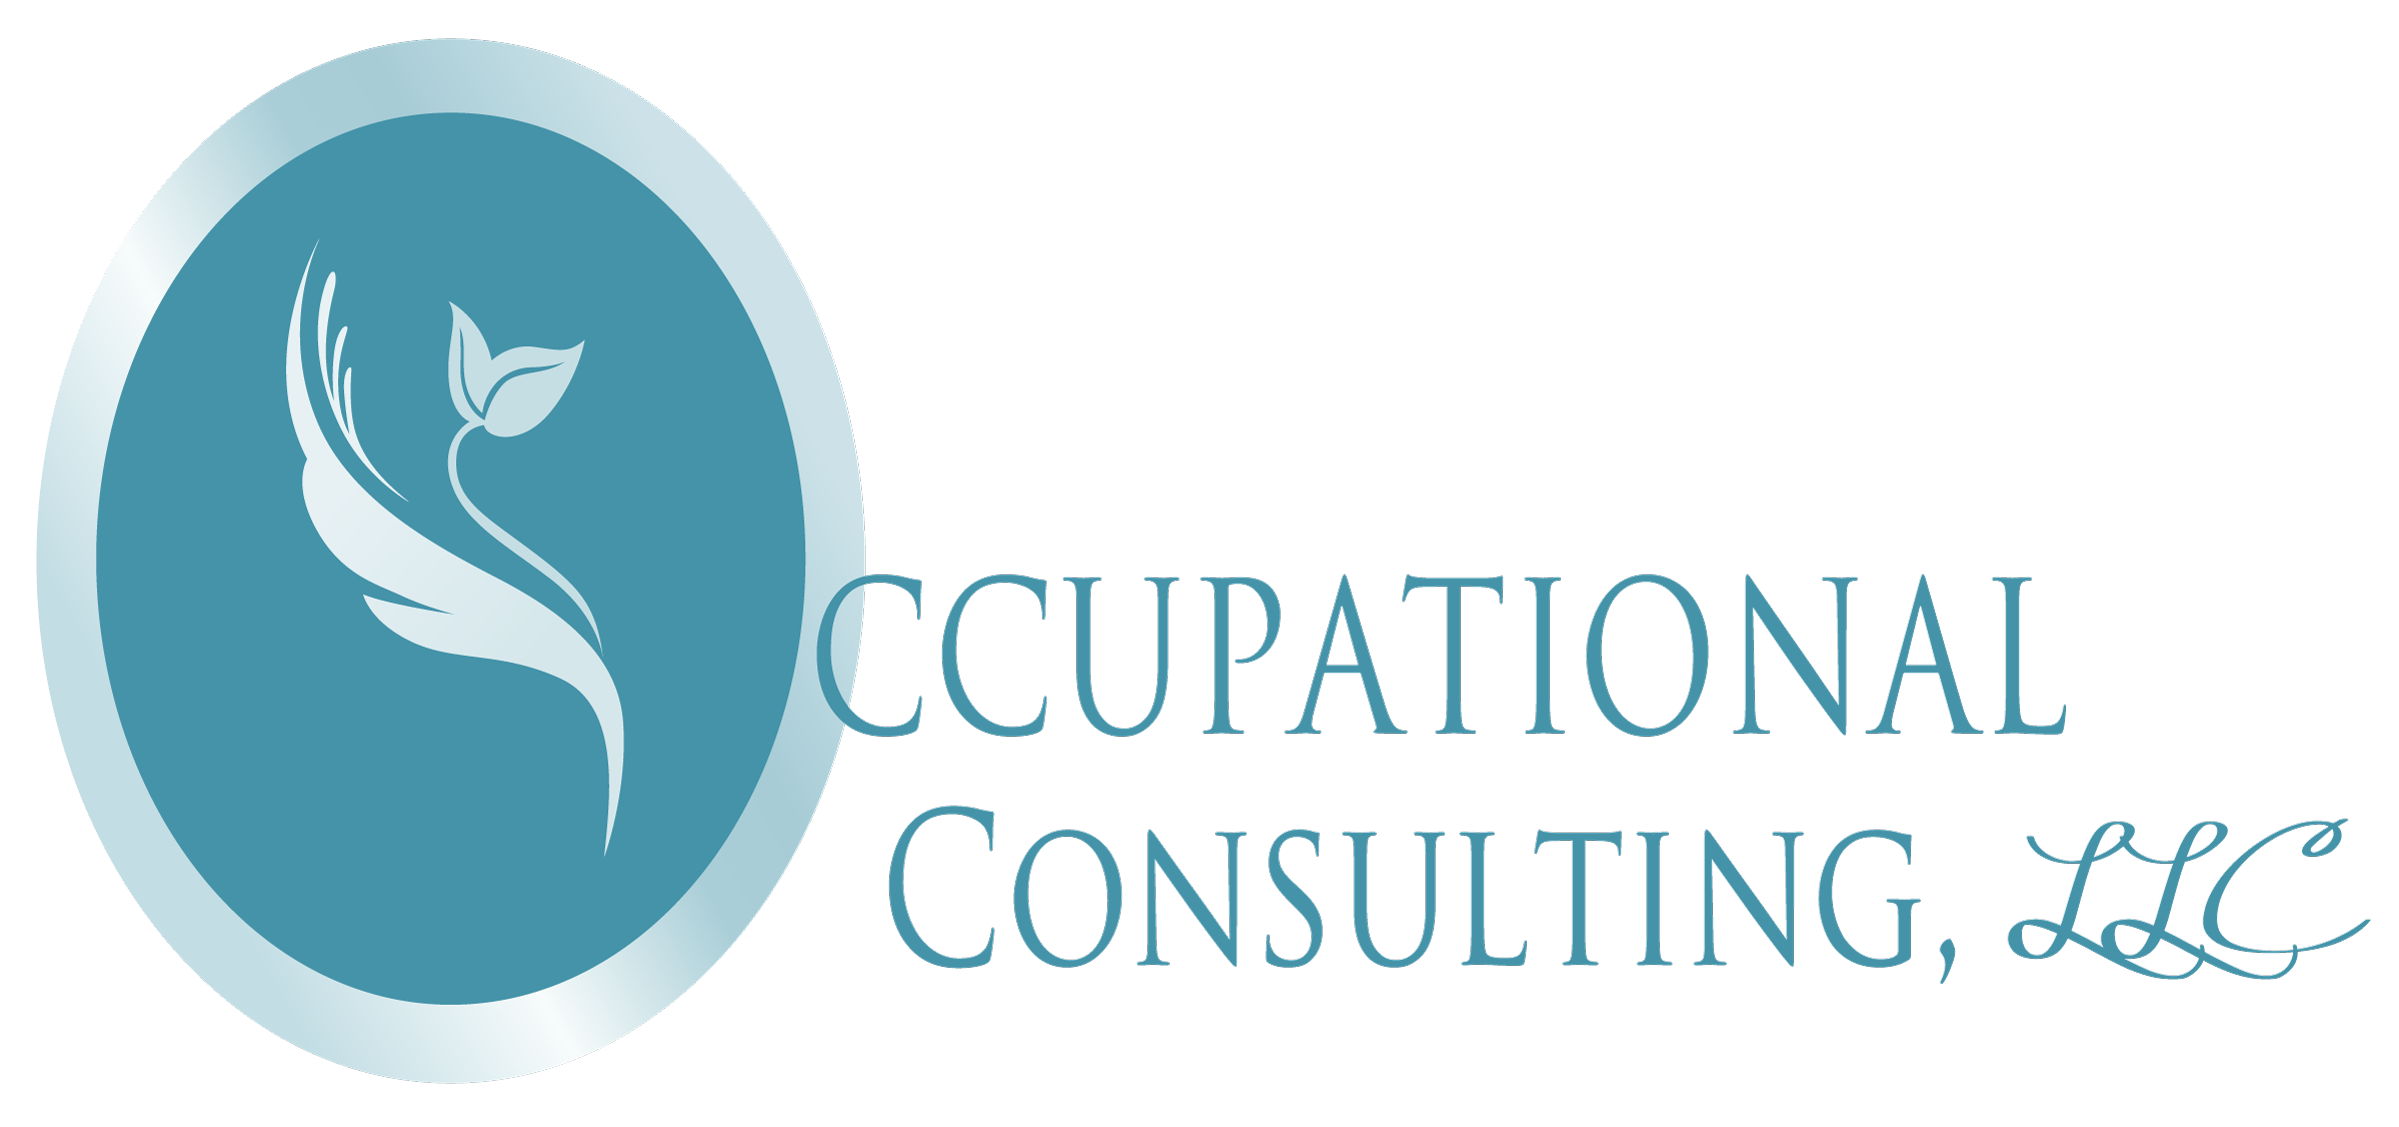 Occupational Consulting Logo